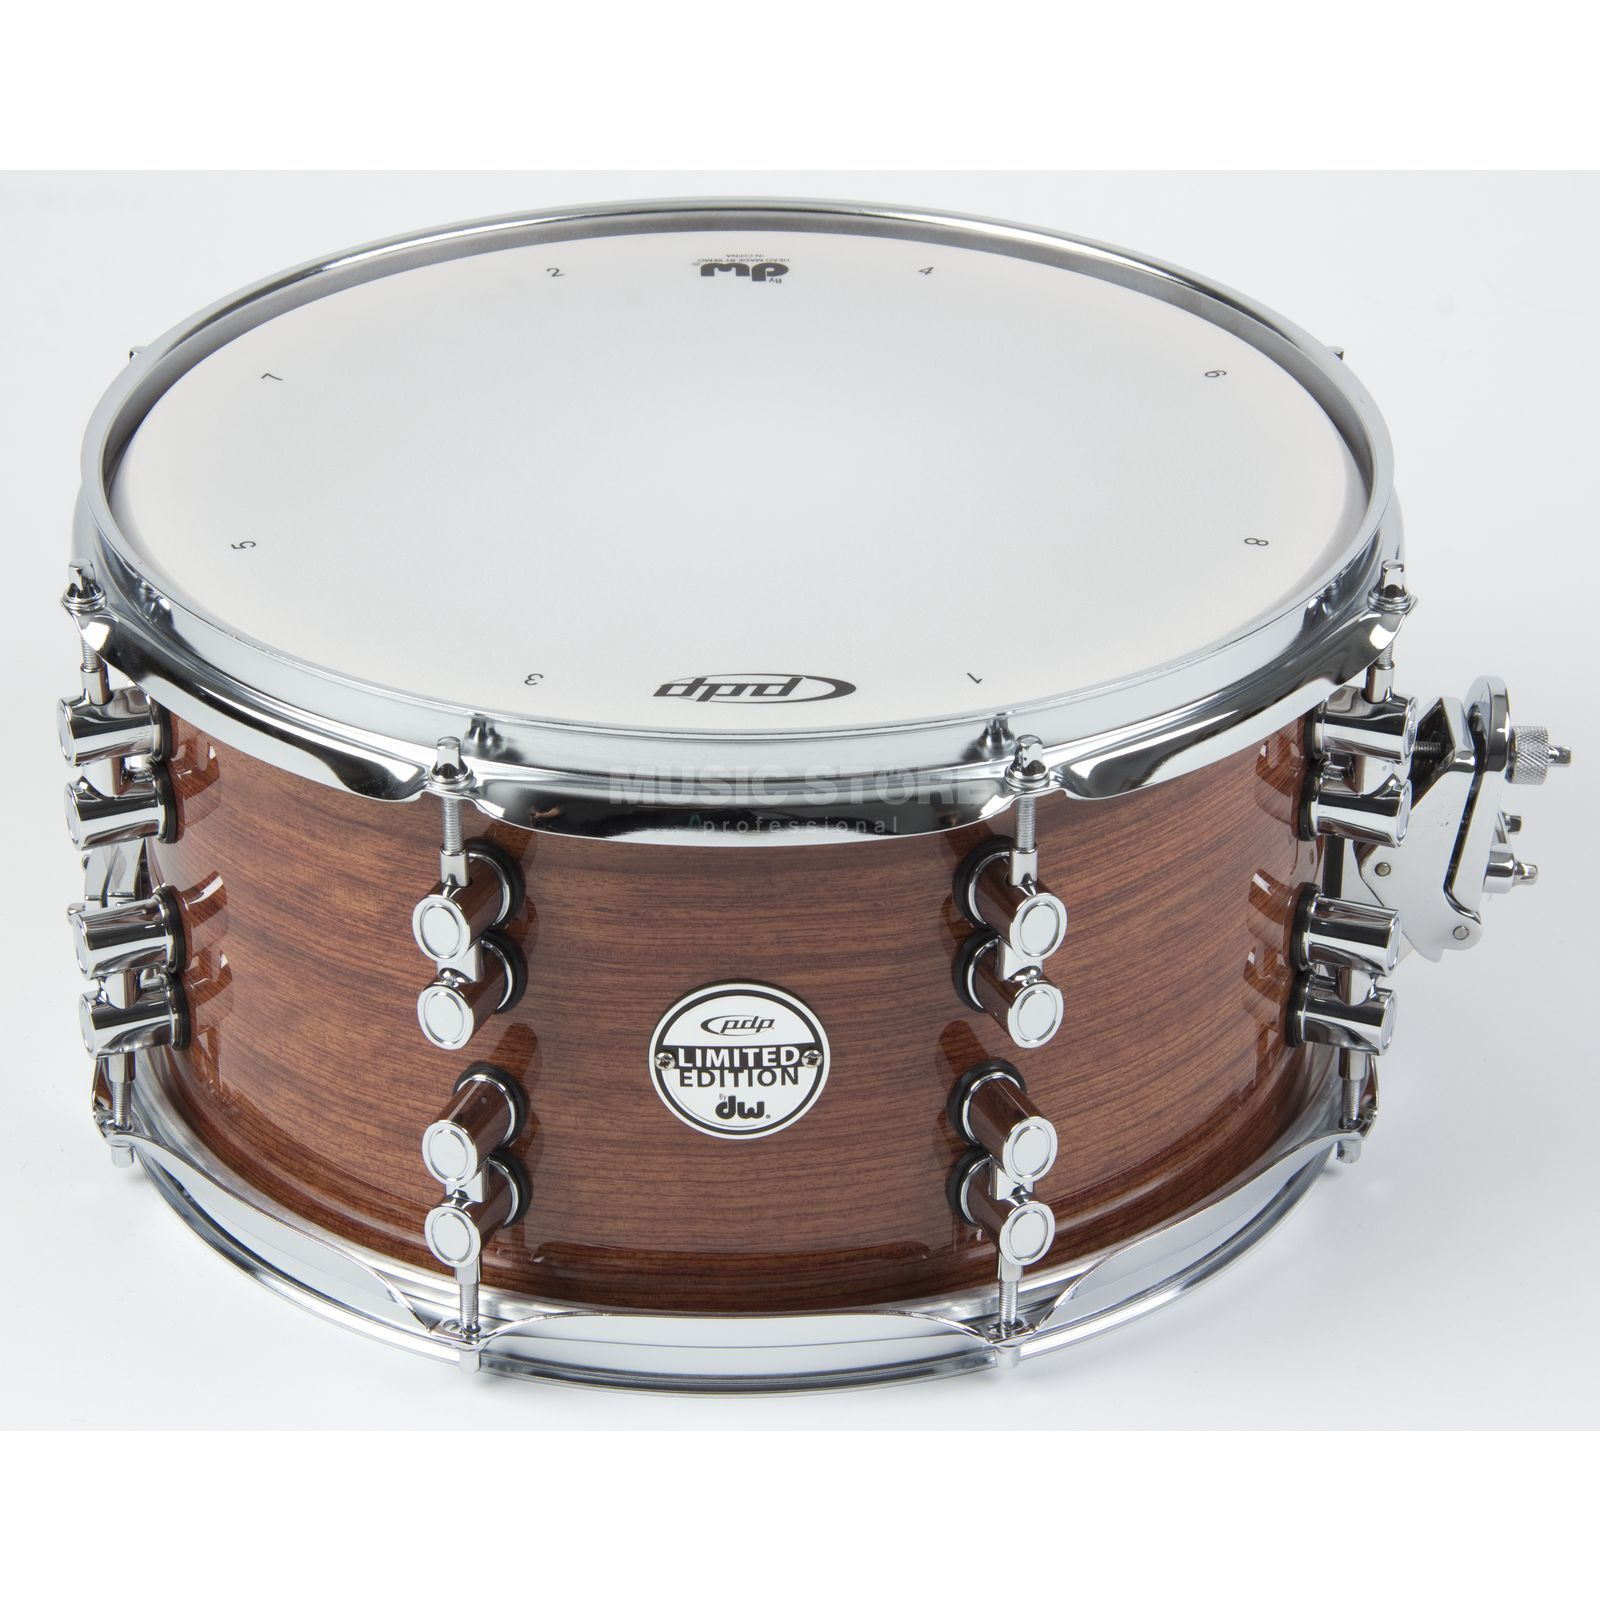 "Drum Workshop PDP Satin Oil Snare 13""x7"", Bubinga/Maple/Bubinga Produktbild"